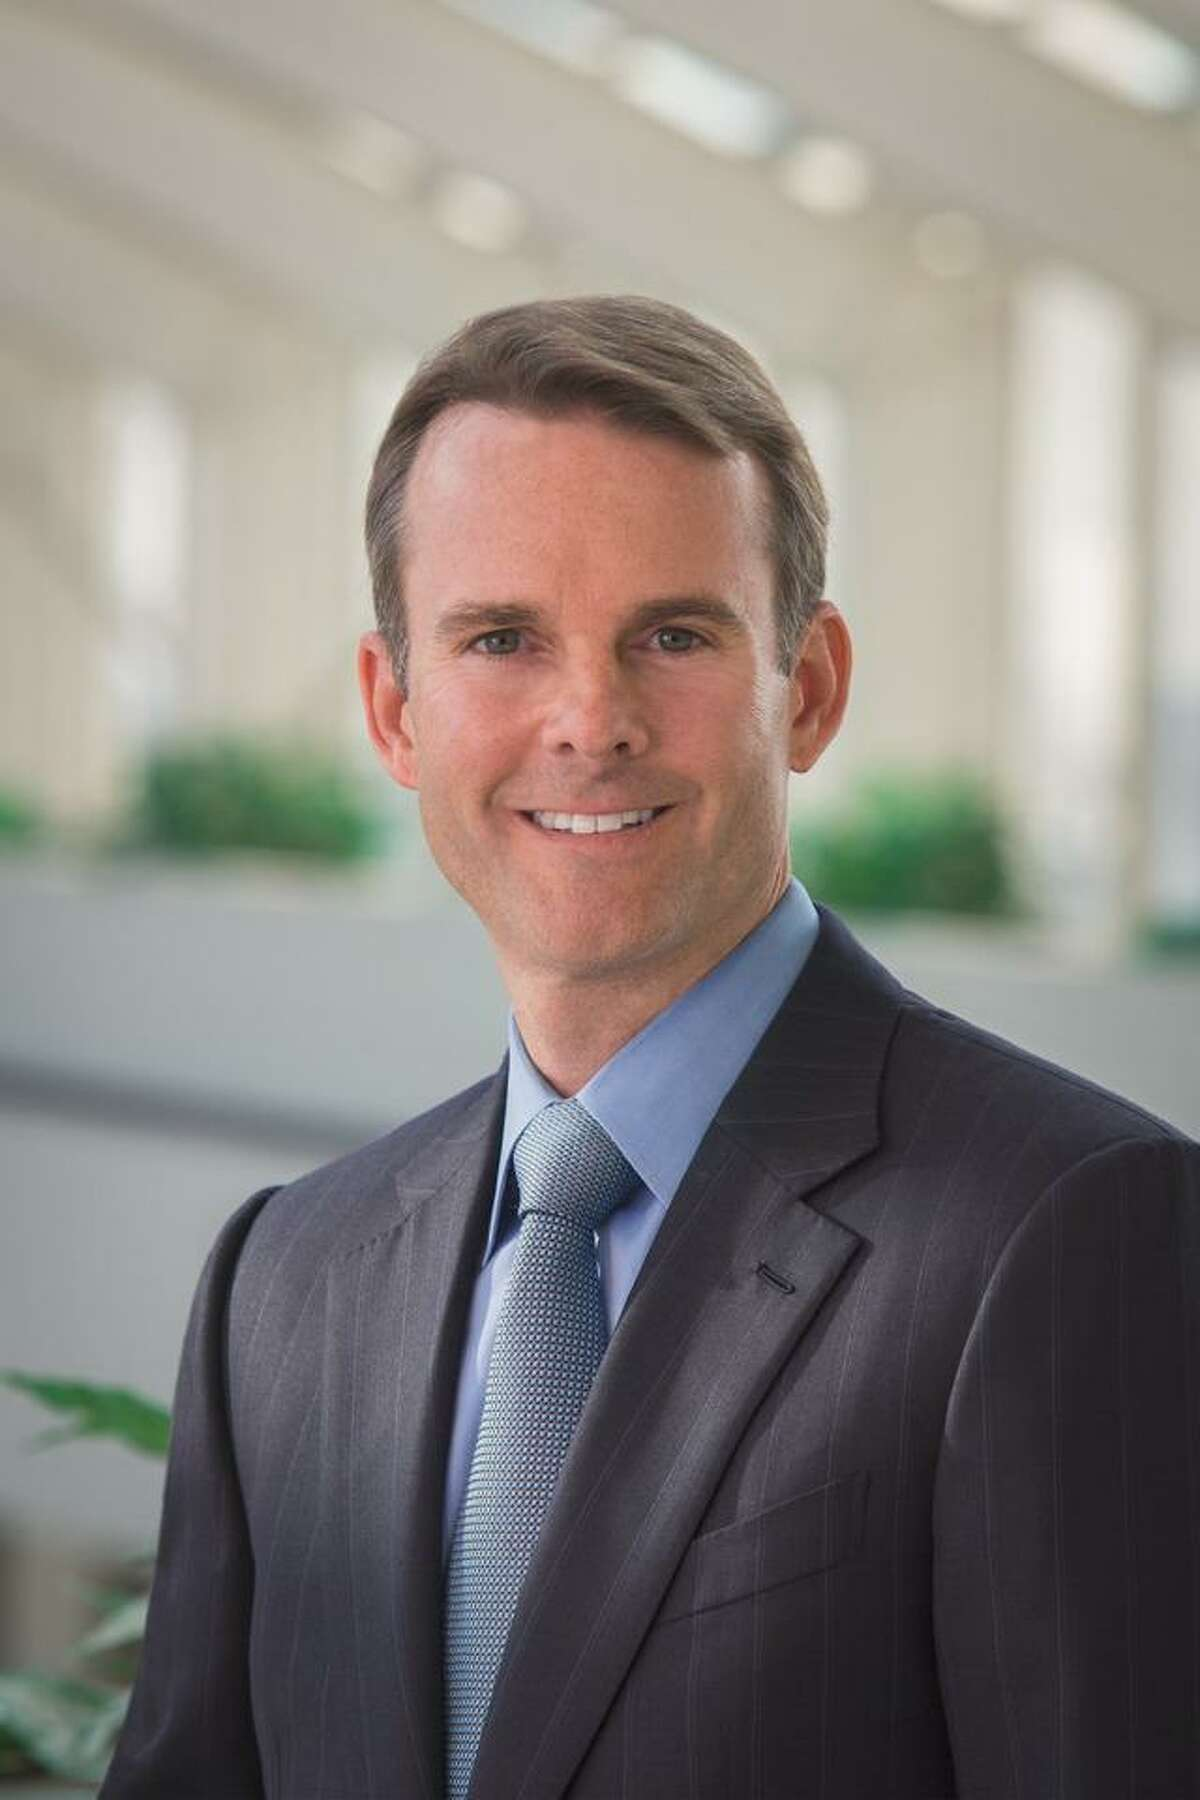 Kevin Jones has been the CEO of Rackspace since April 2019.